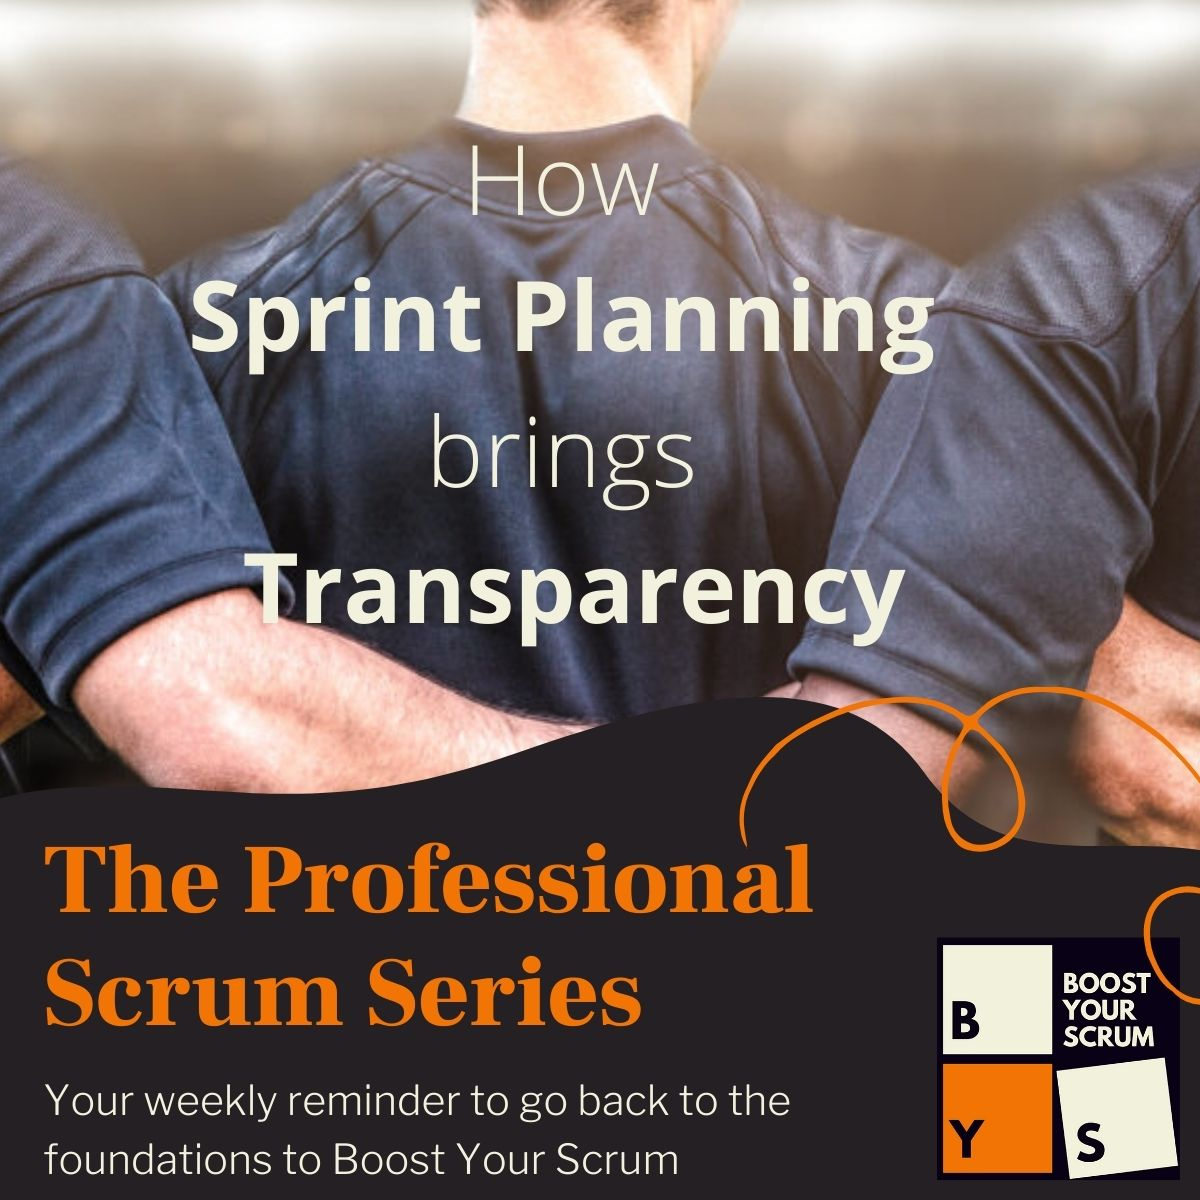 How Sprint Planning brings Transparency